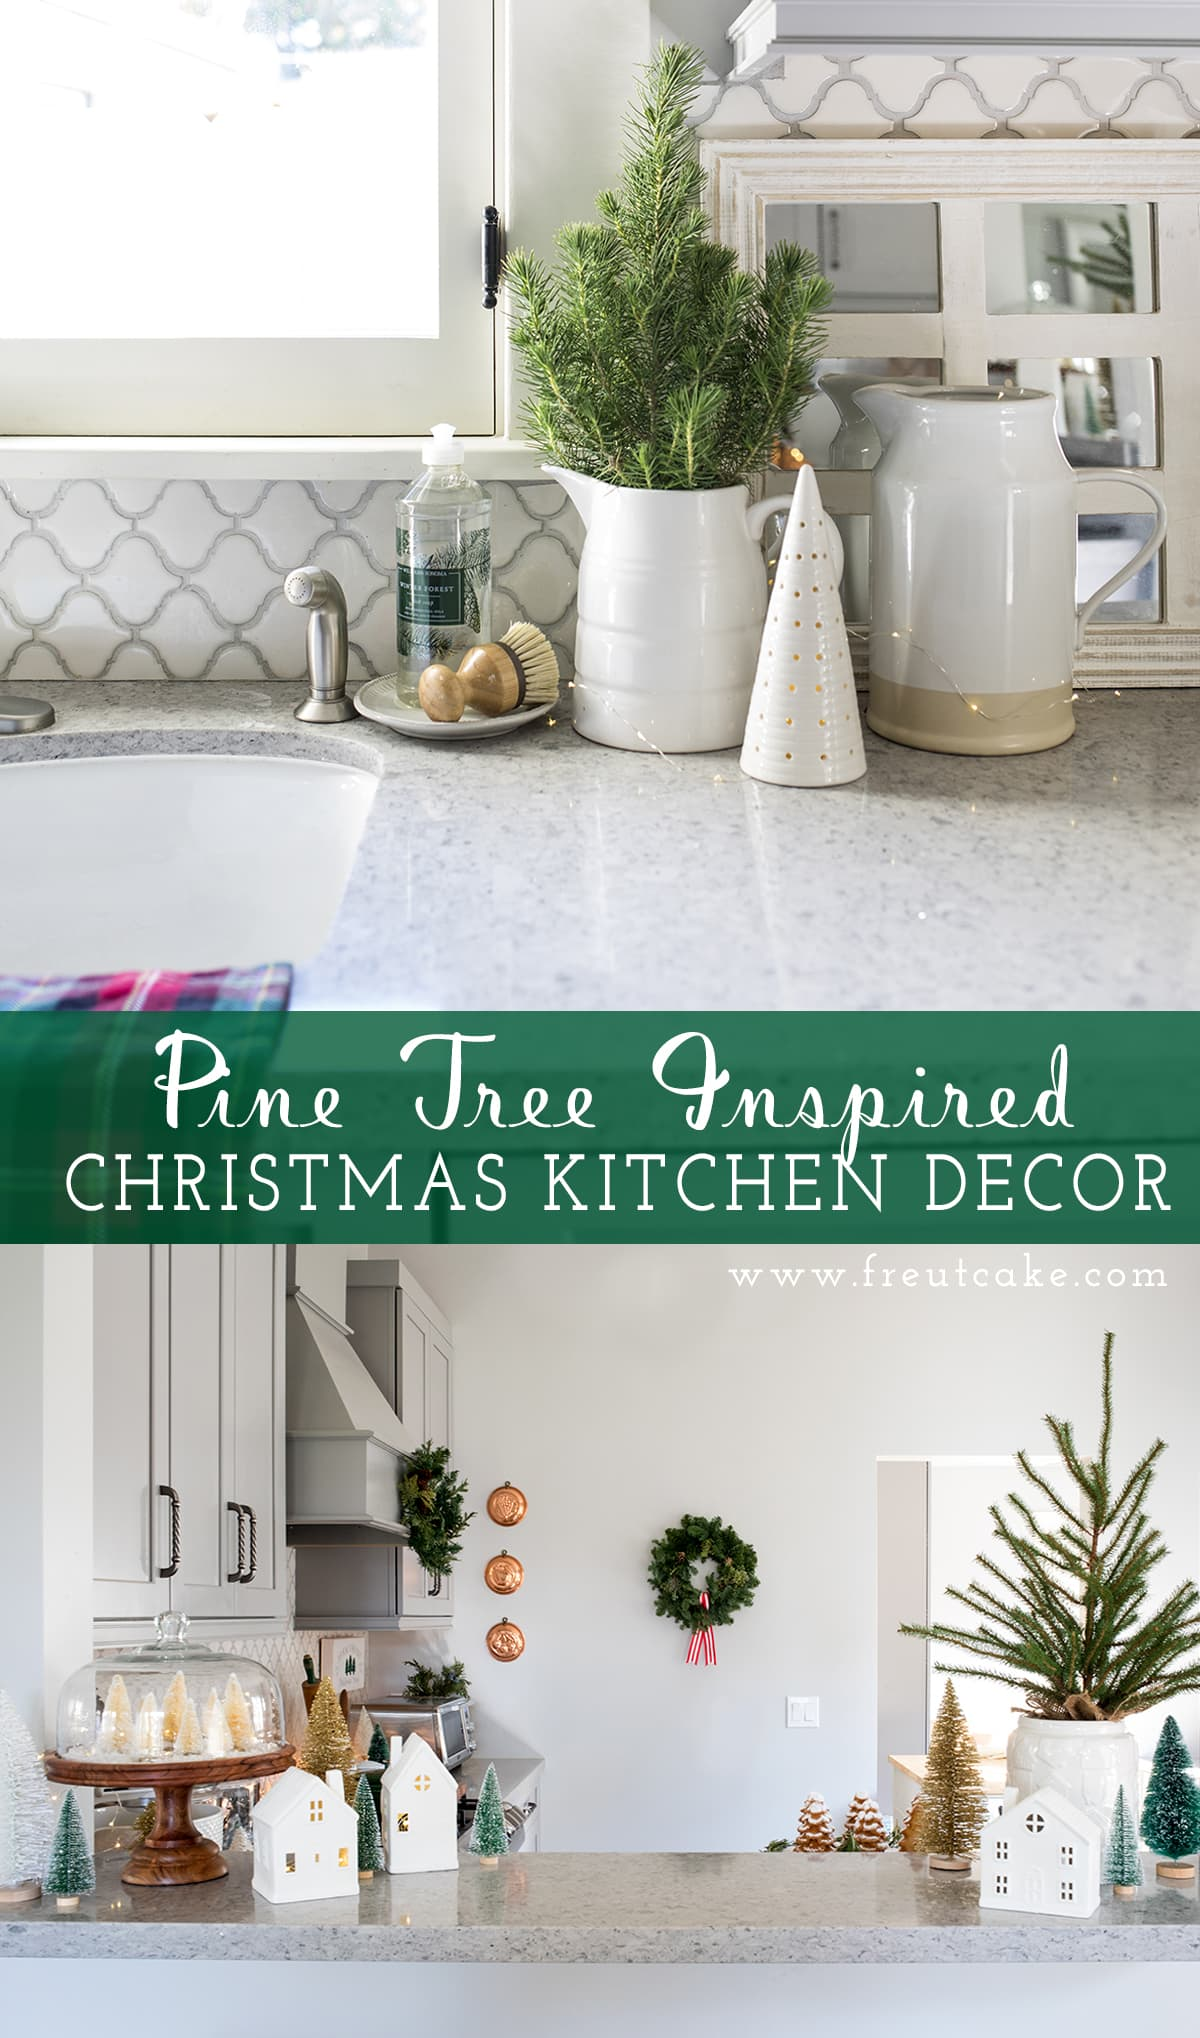 Pine Tree Inspired Christmas Kitchen Decor